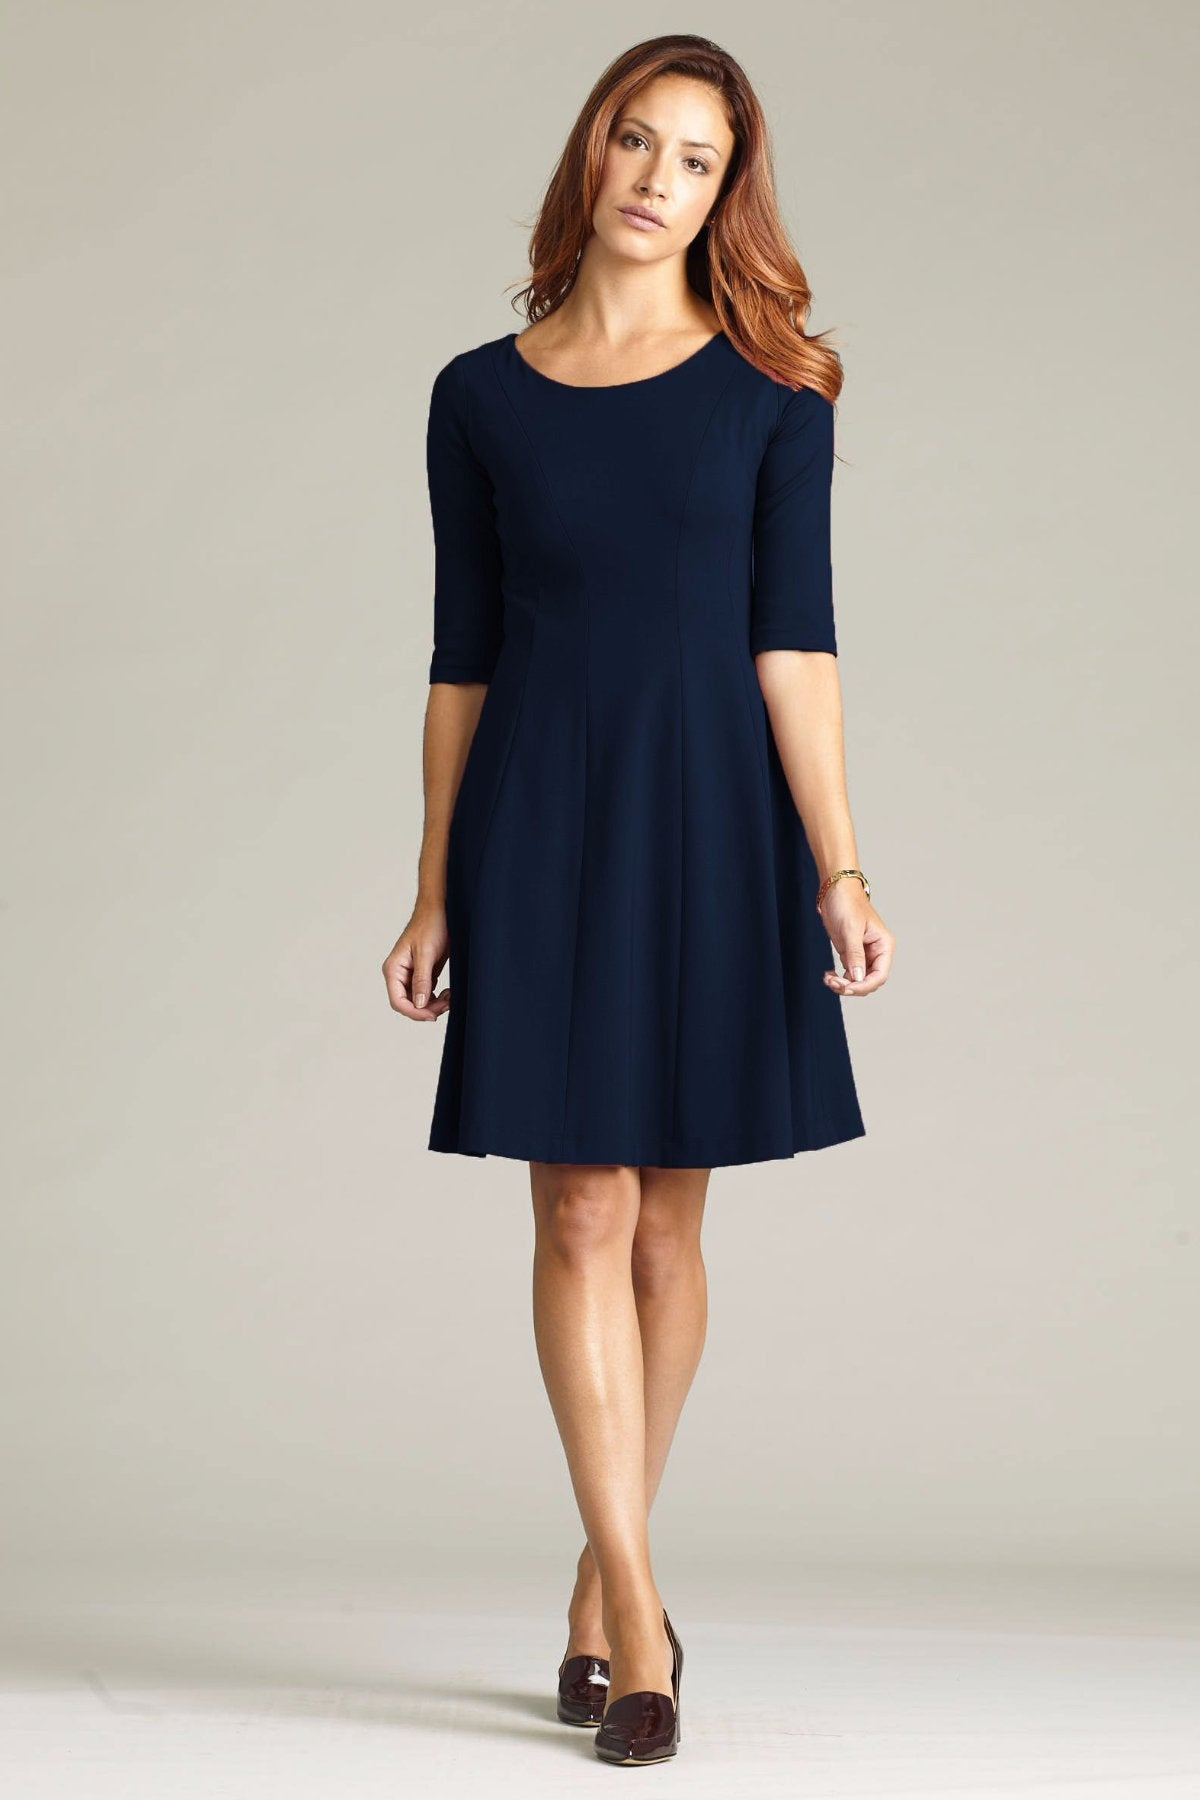 Women's Lizette Dress in Navy | Nora Gardner Front